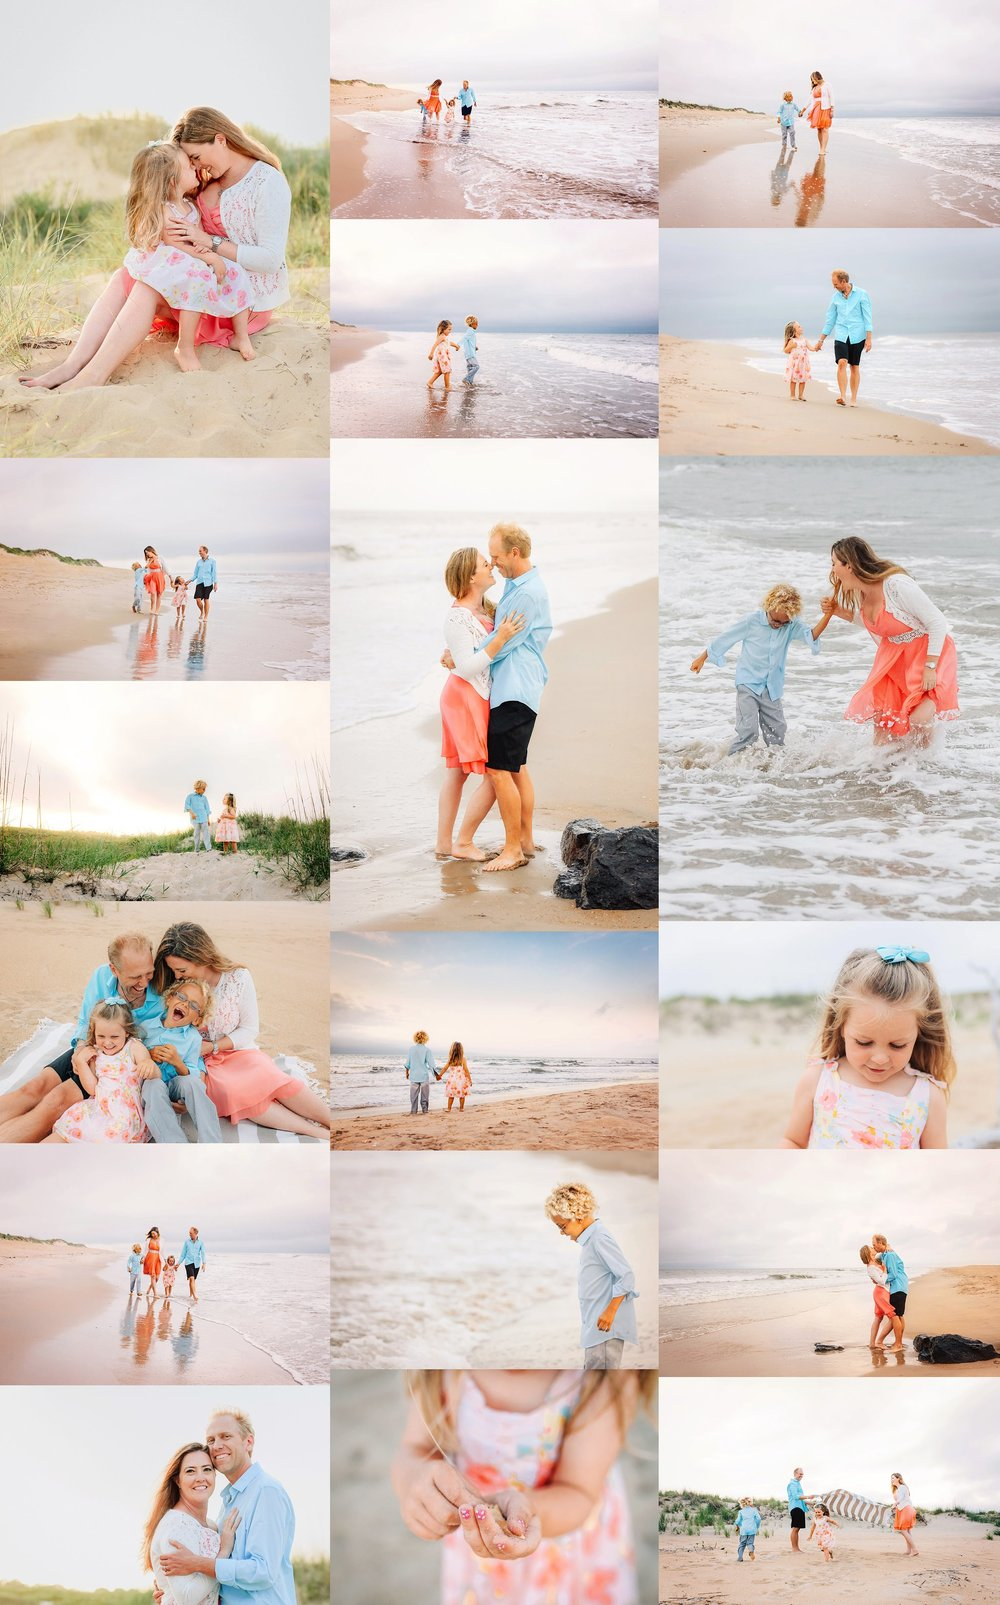 virginia-beach-sandbridge-family-photography-lifestyle-beach-session-inspiration-beach-photography-summer.jpg